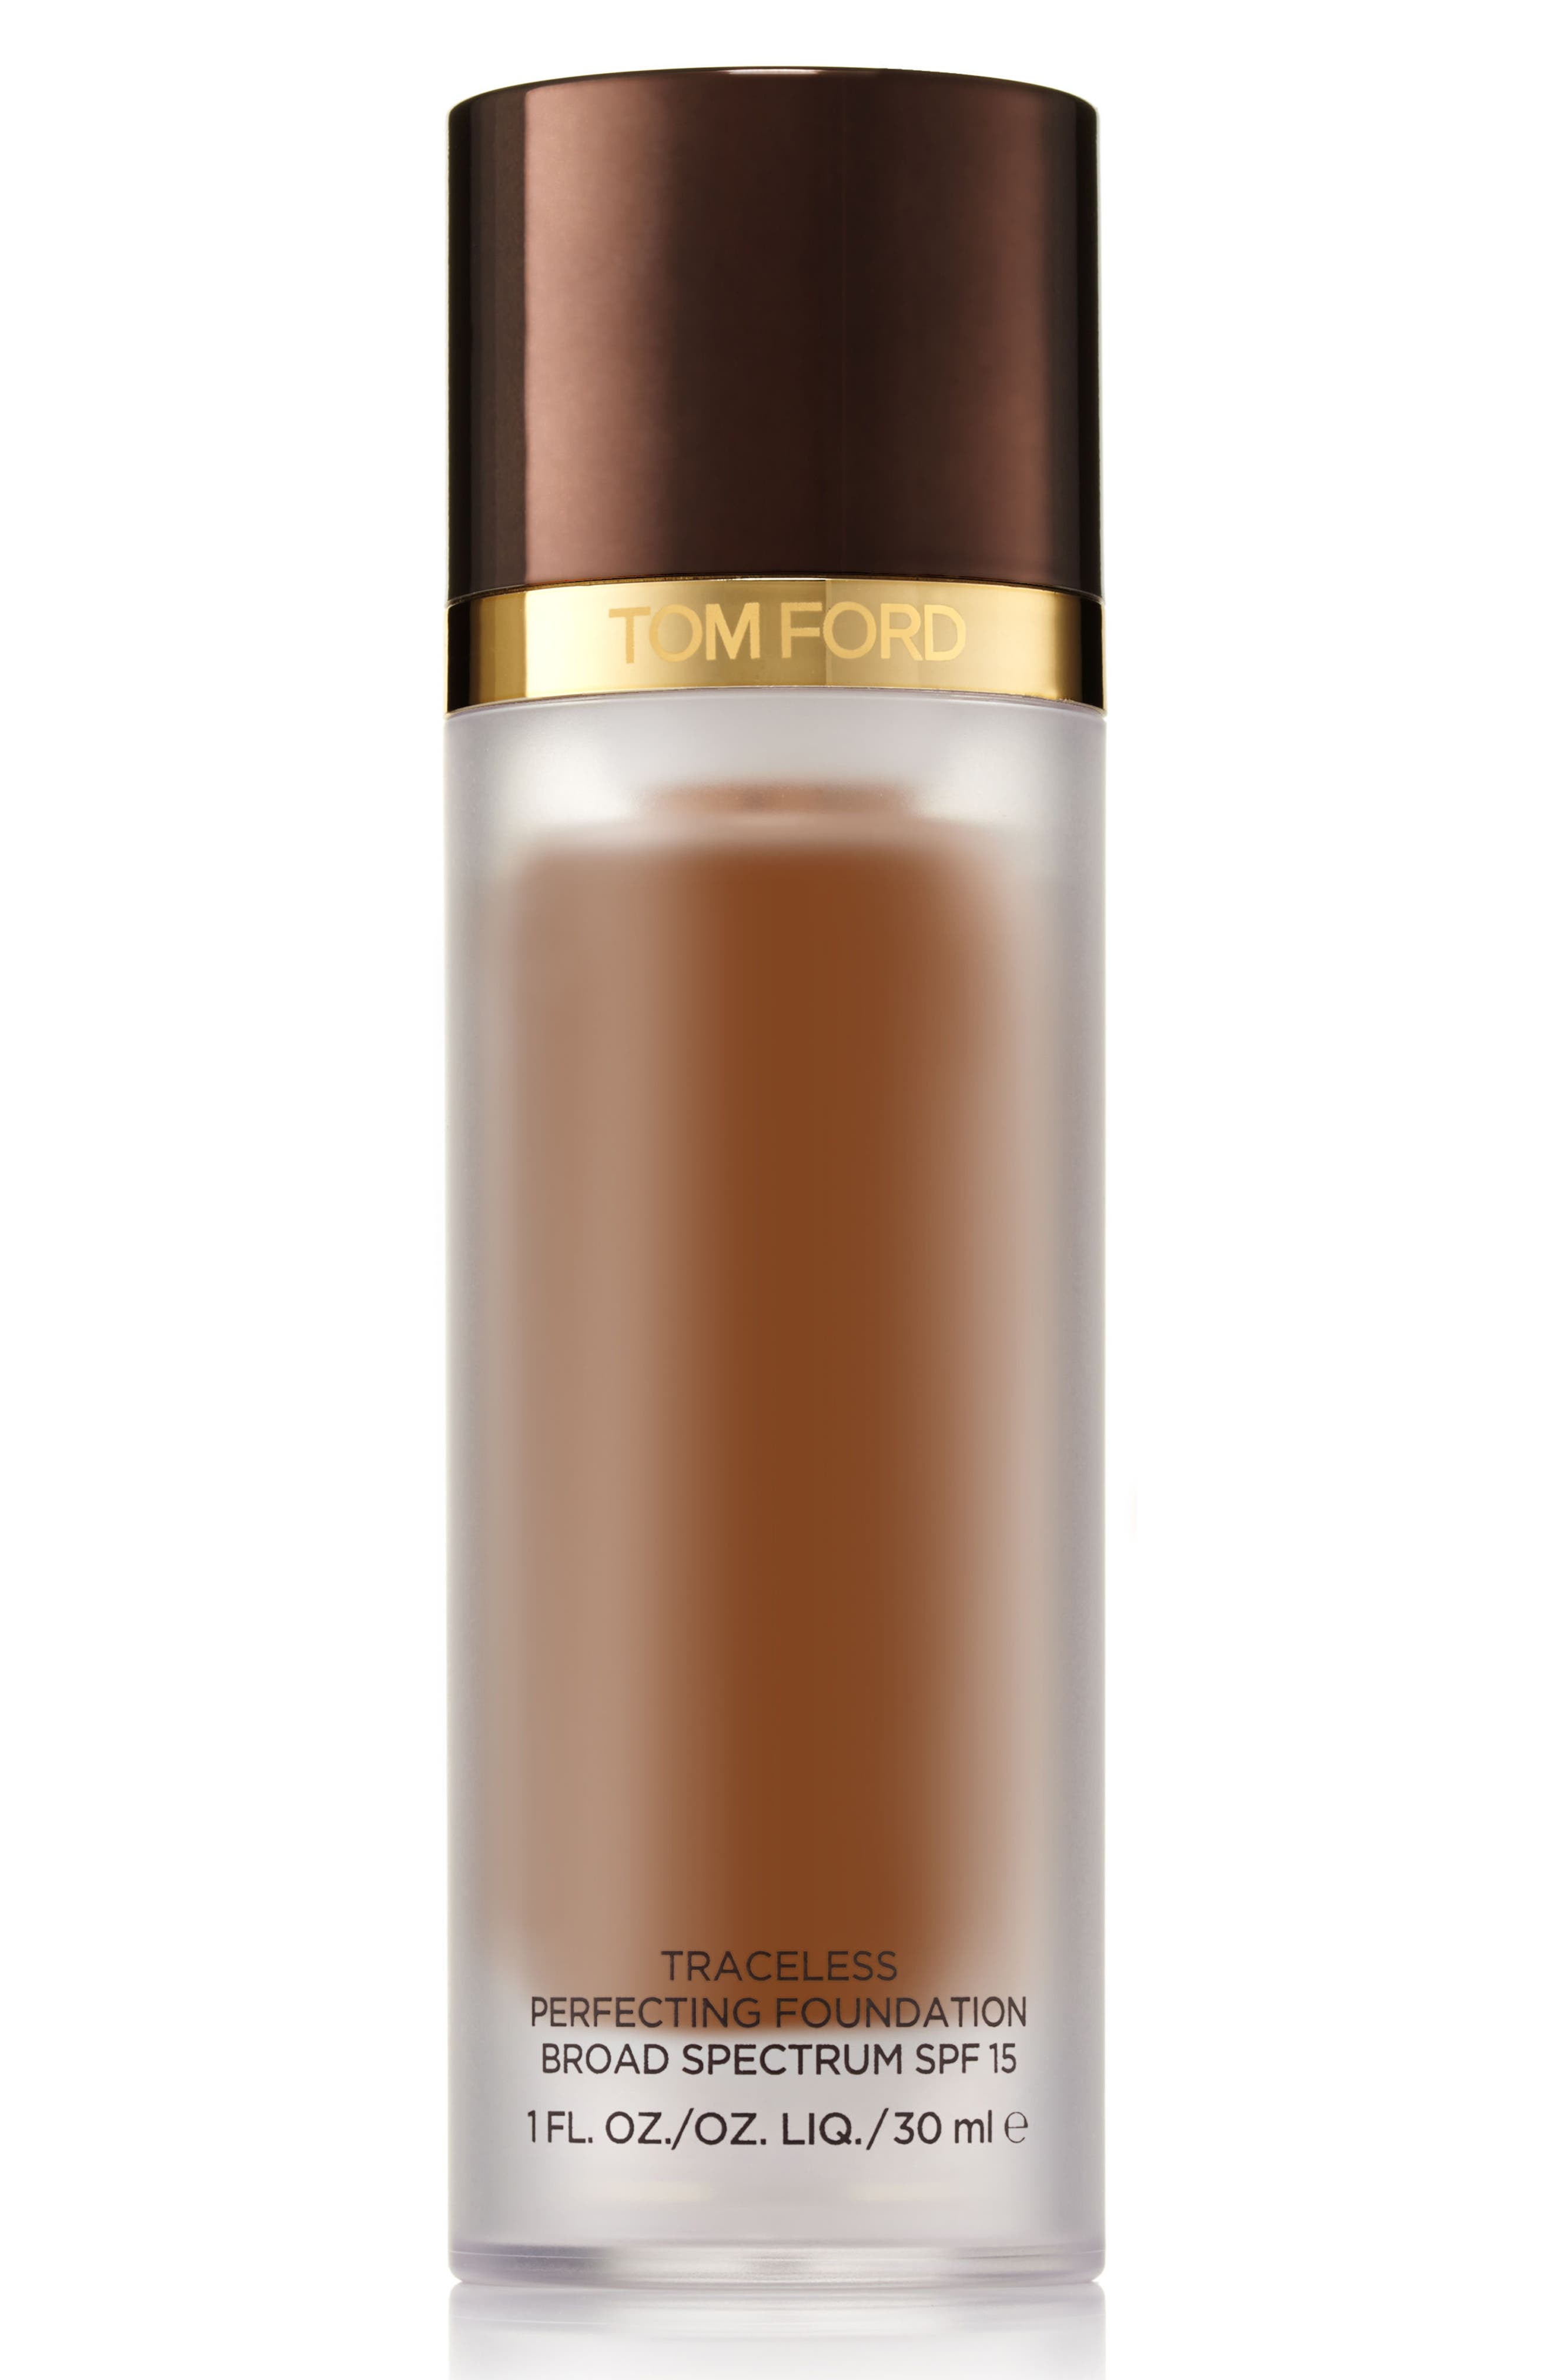 TOM FORD Traceless Perfecting Foundation SPF 15, Main, color, 11.0 DUSK